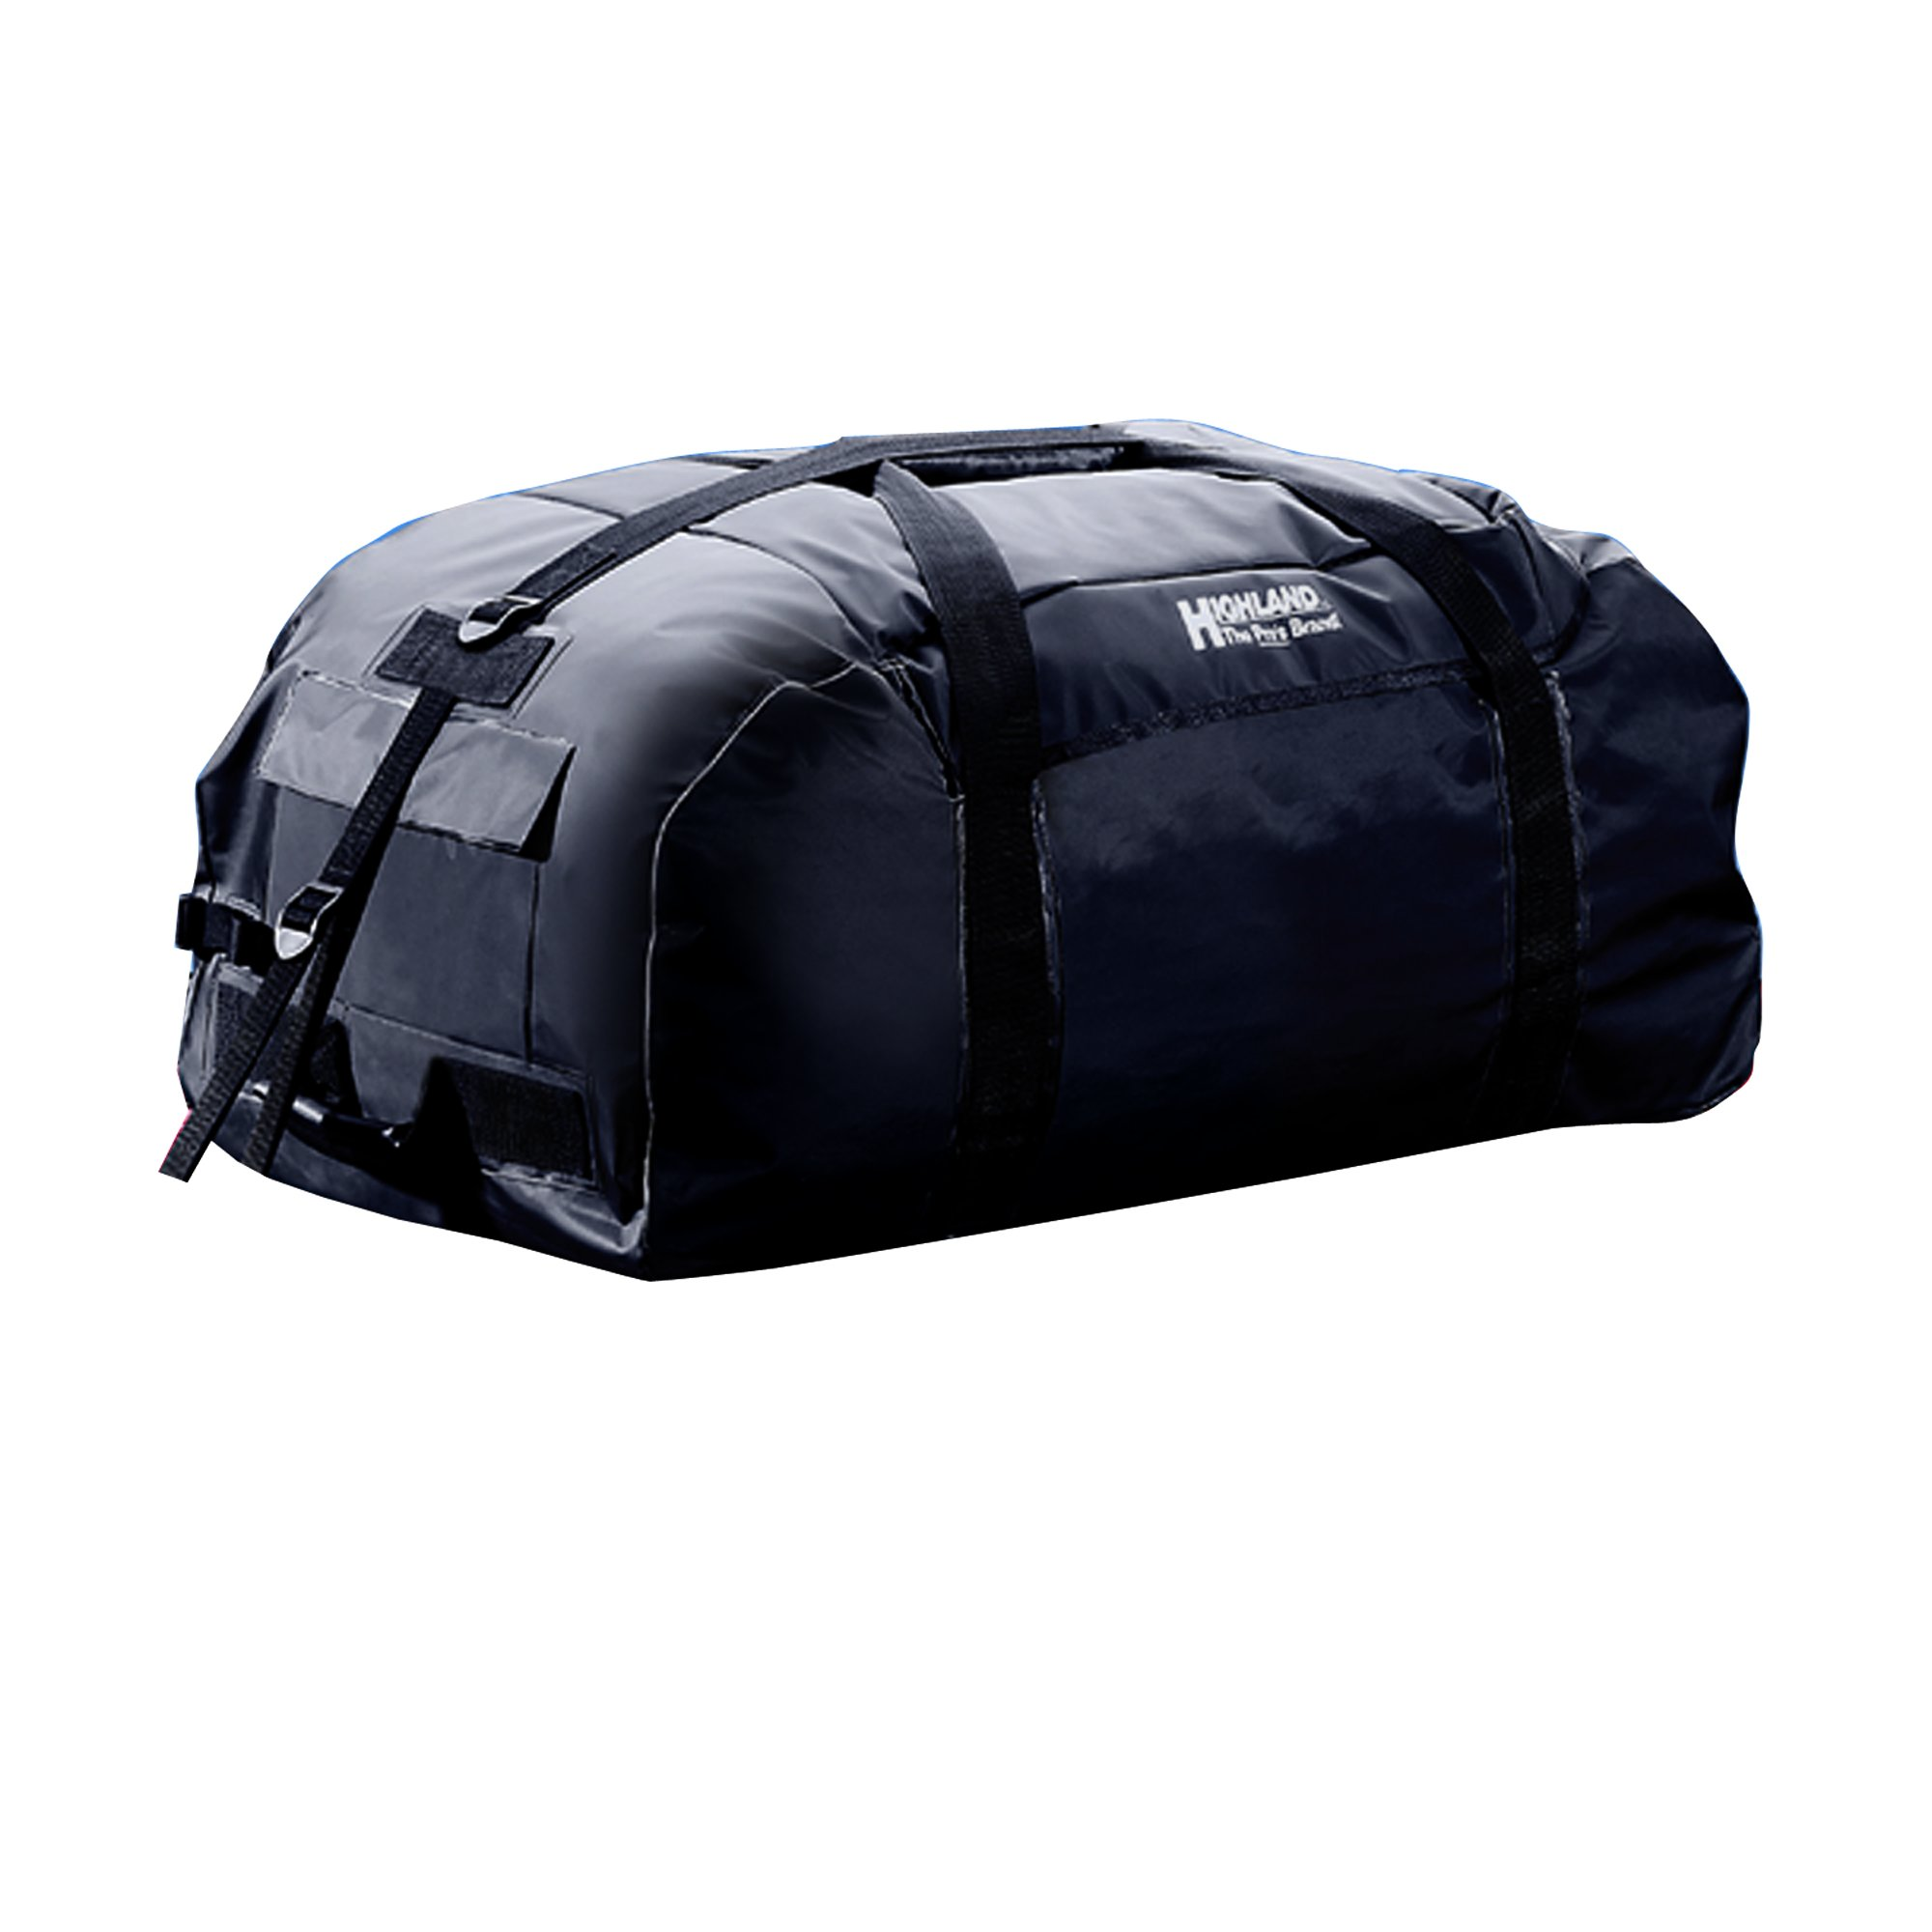 Highland 1039600 Rainproof Car Top Luggage with Wheels by Highland